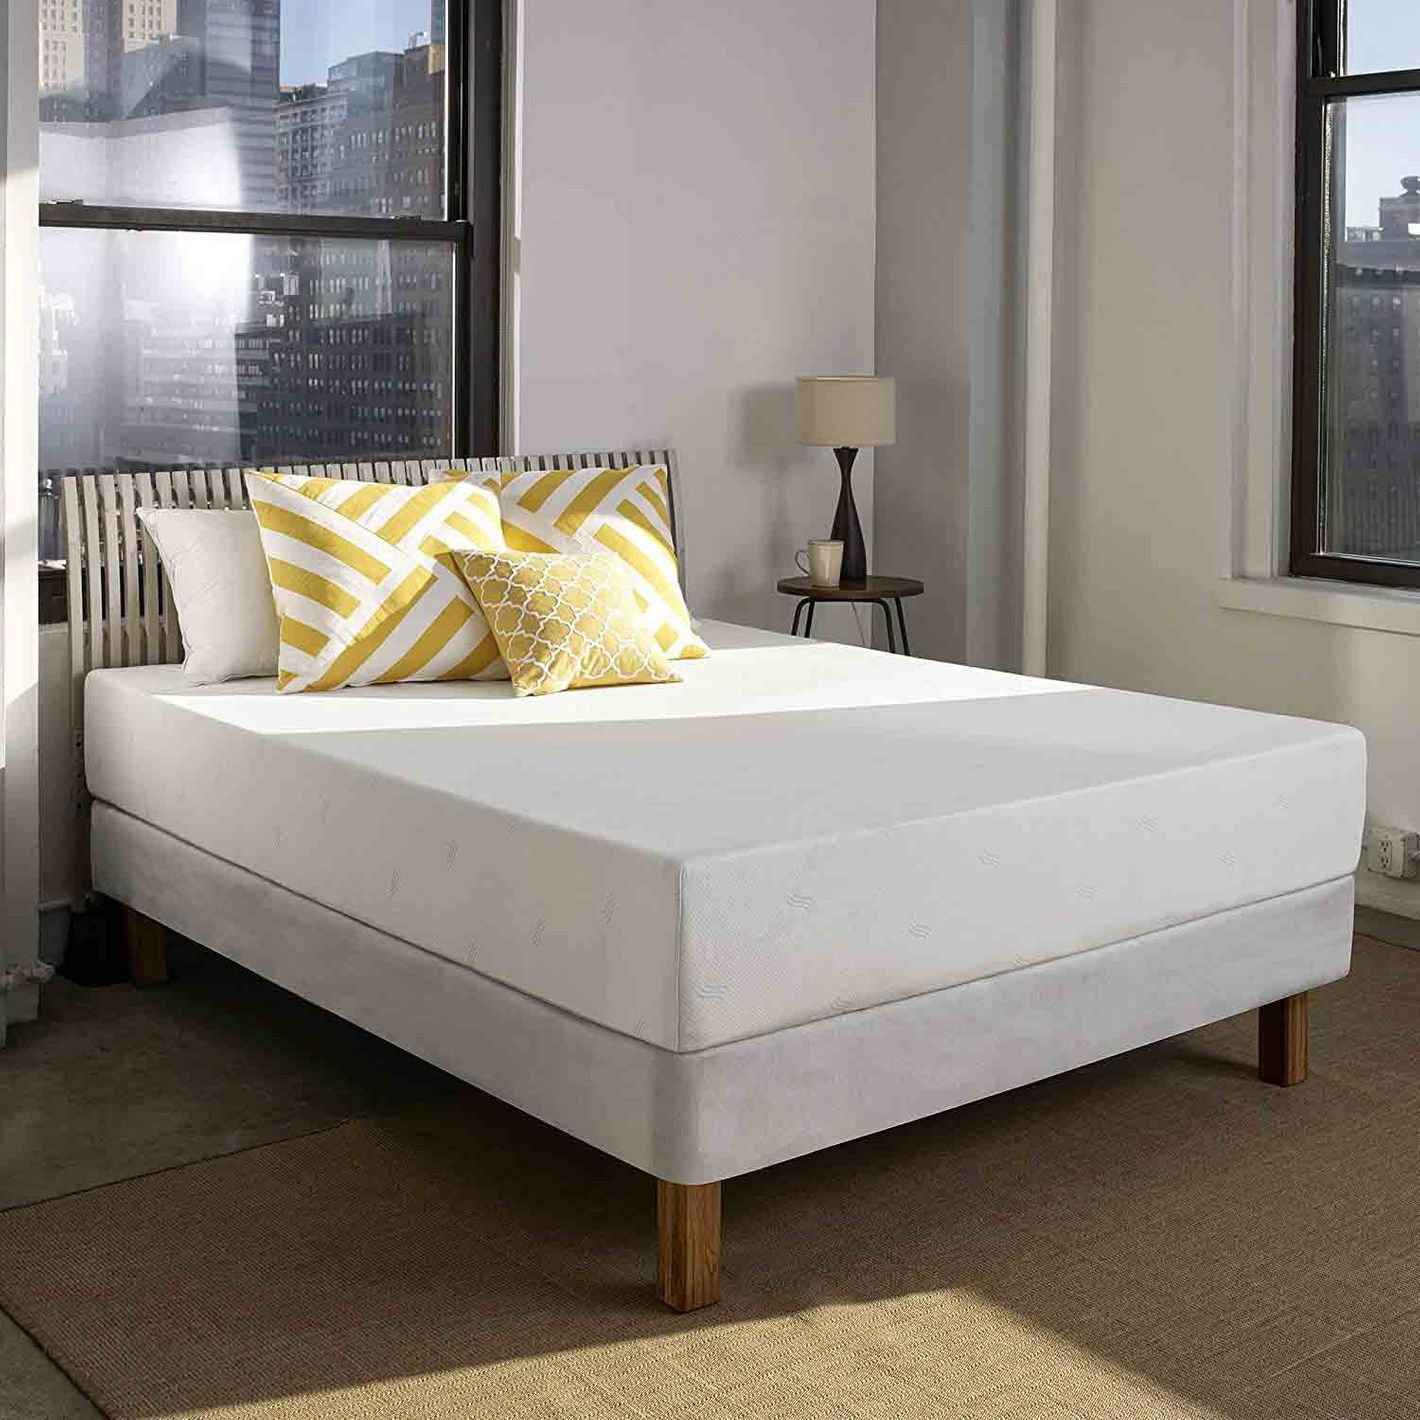 Full Sleep Innovations Mattress with Two Pillows